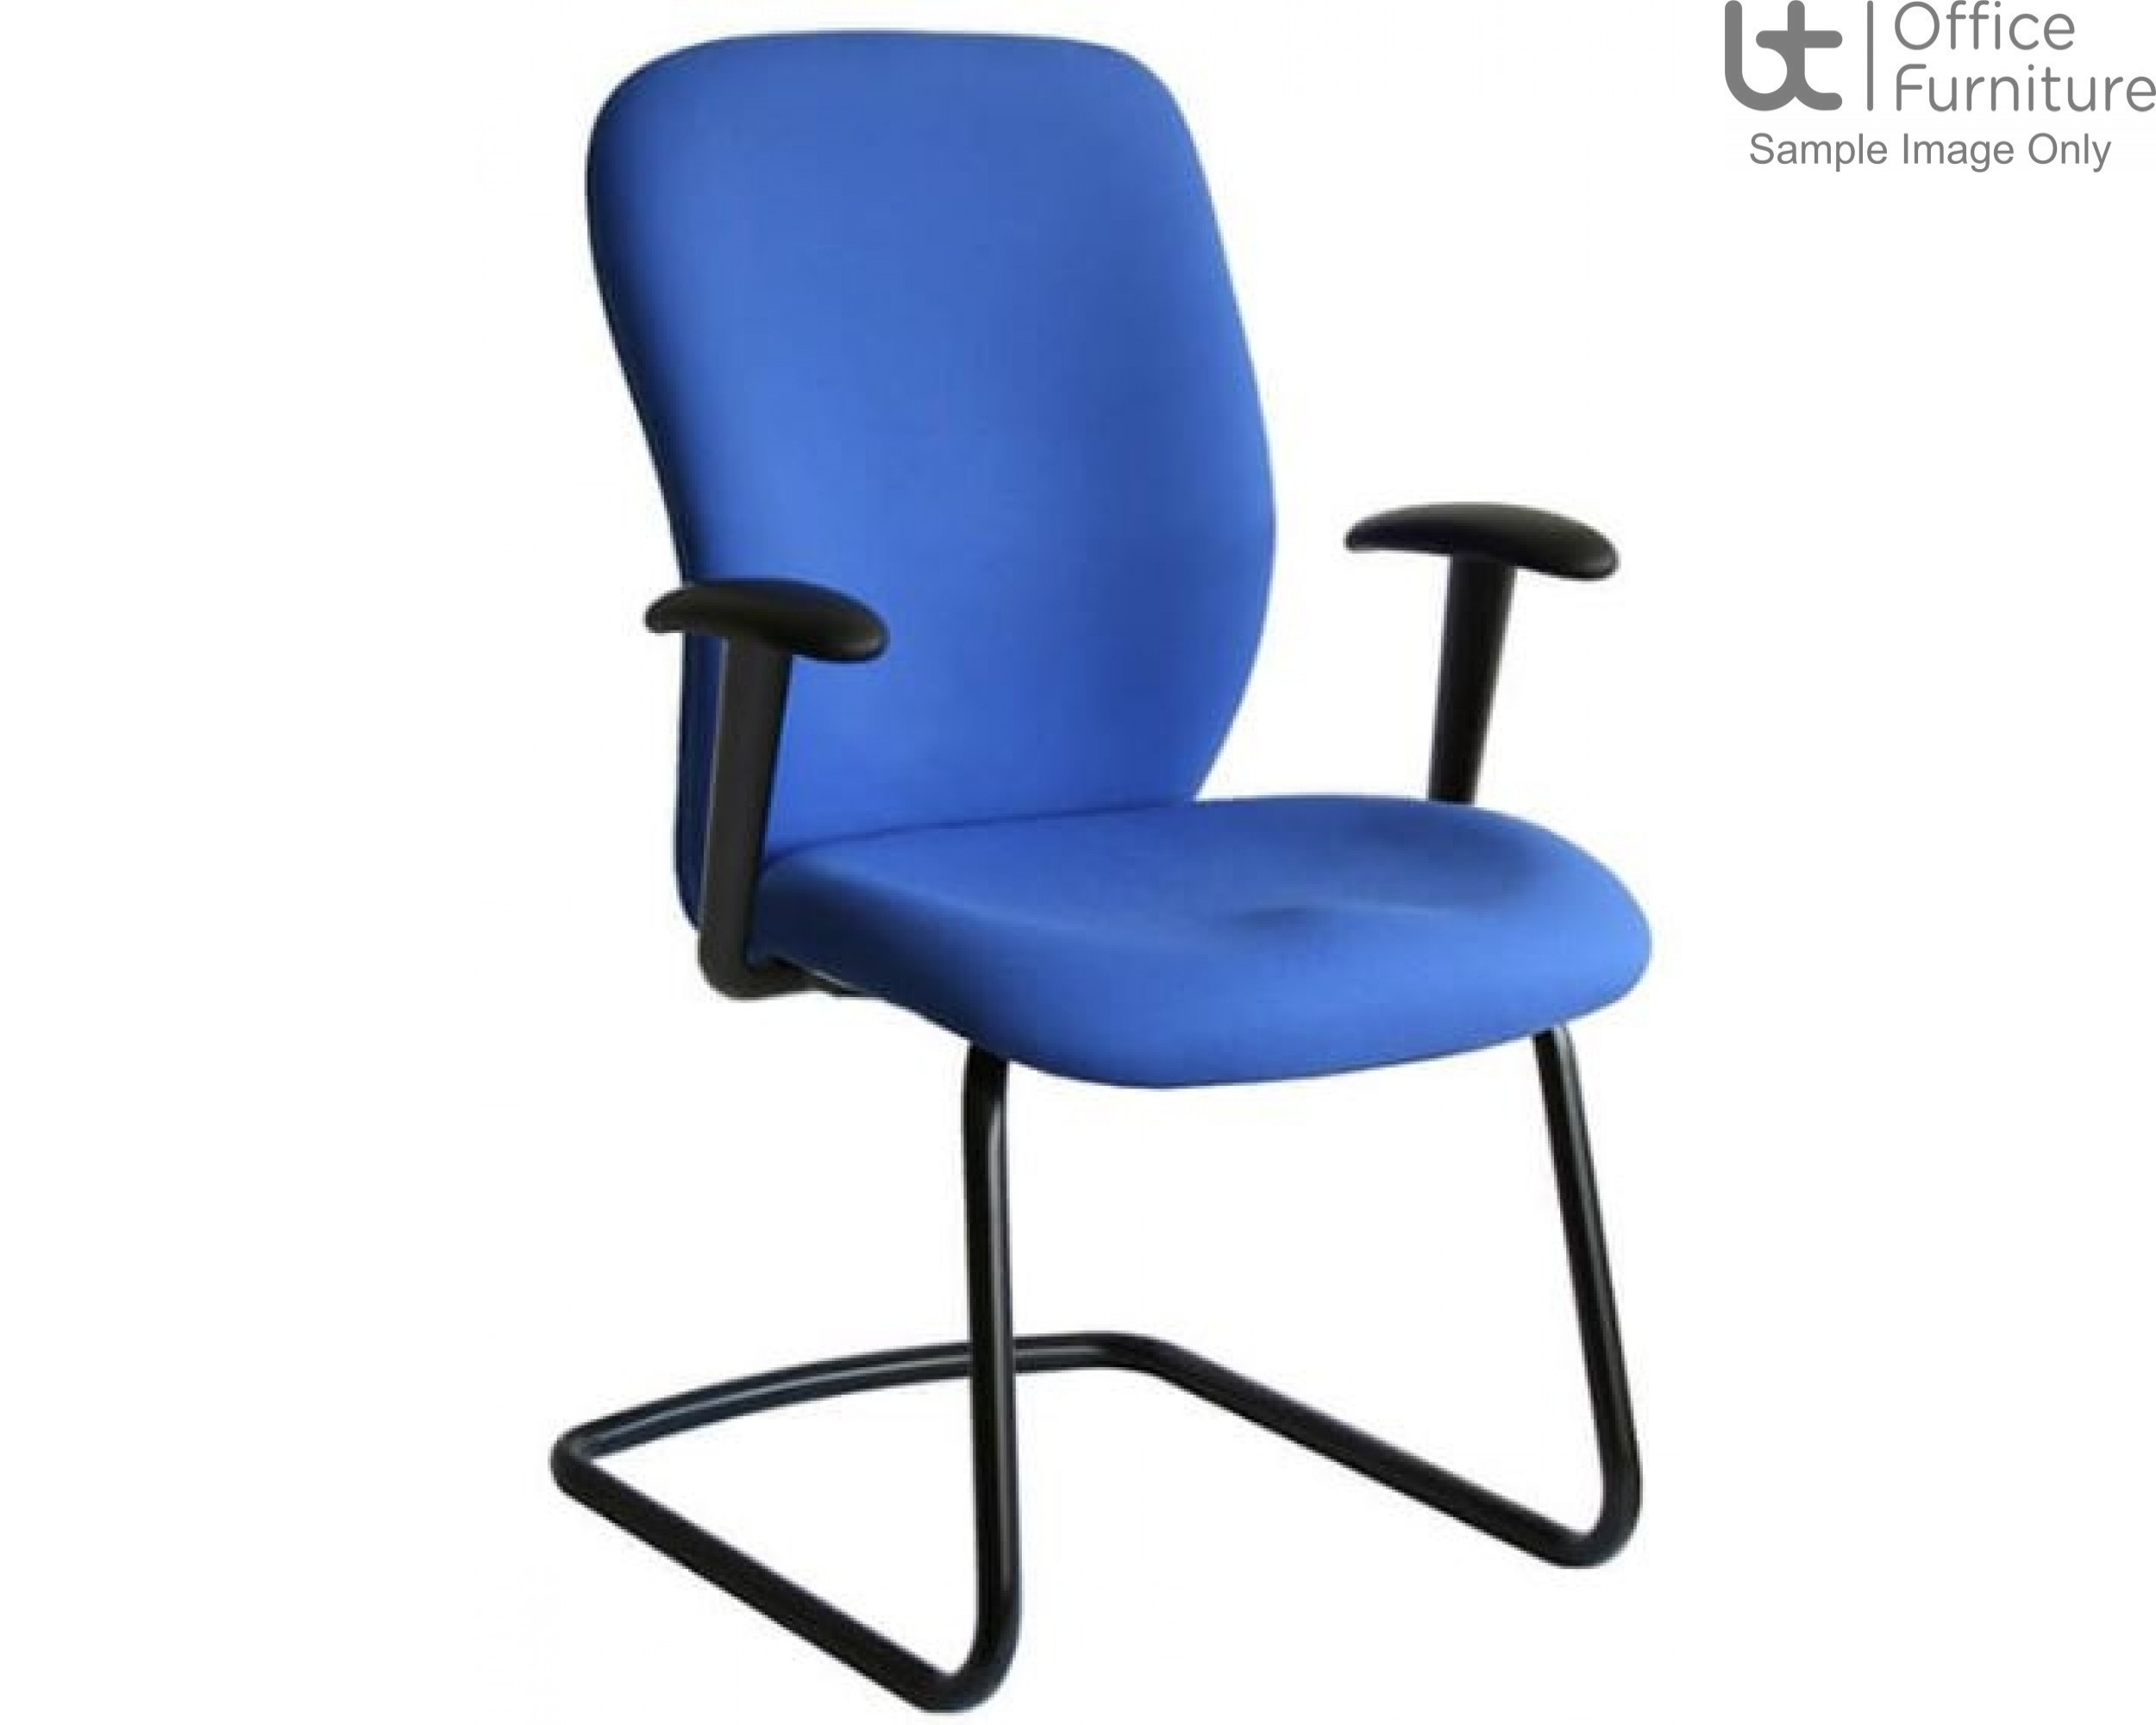 Verco Operator/Task Chair - Ergoform 1 Medium Back Visitor Chair with Arms